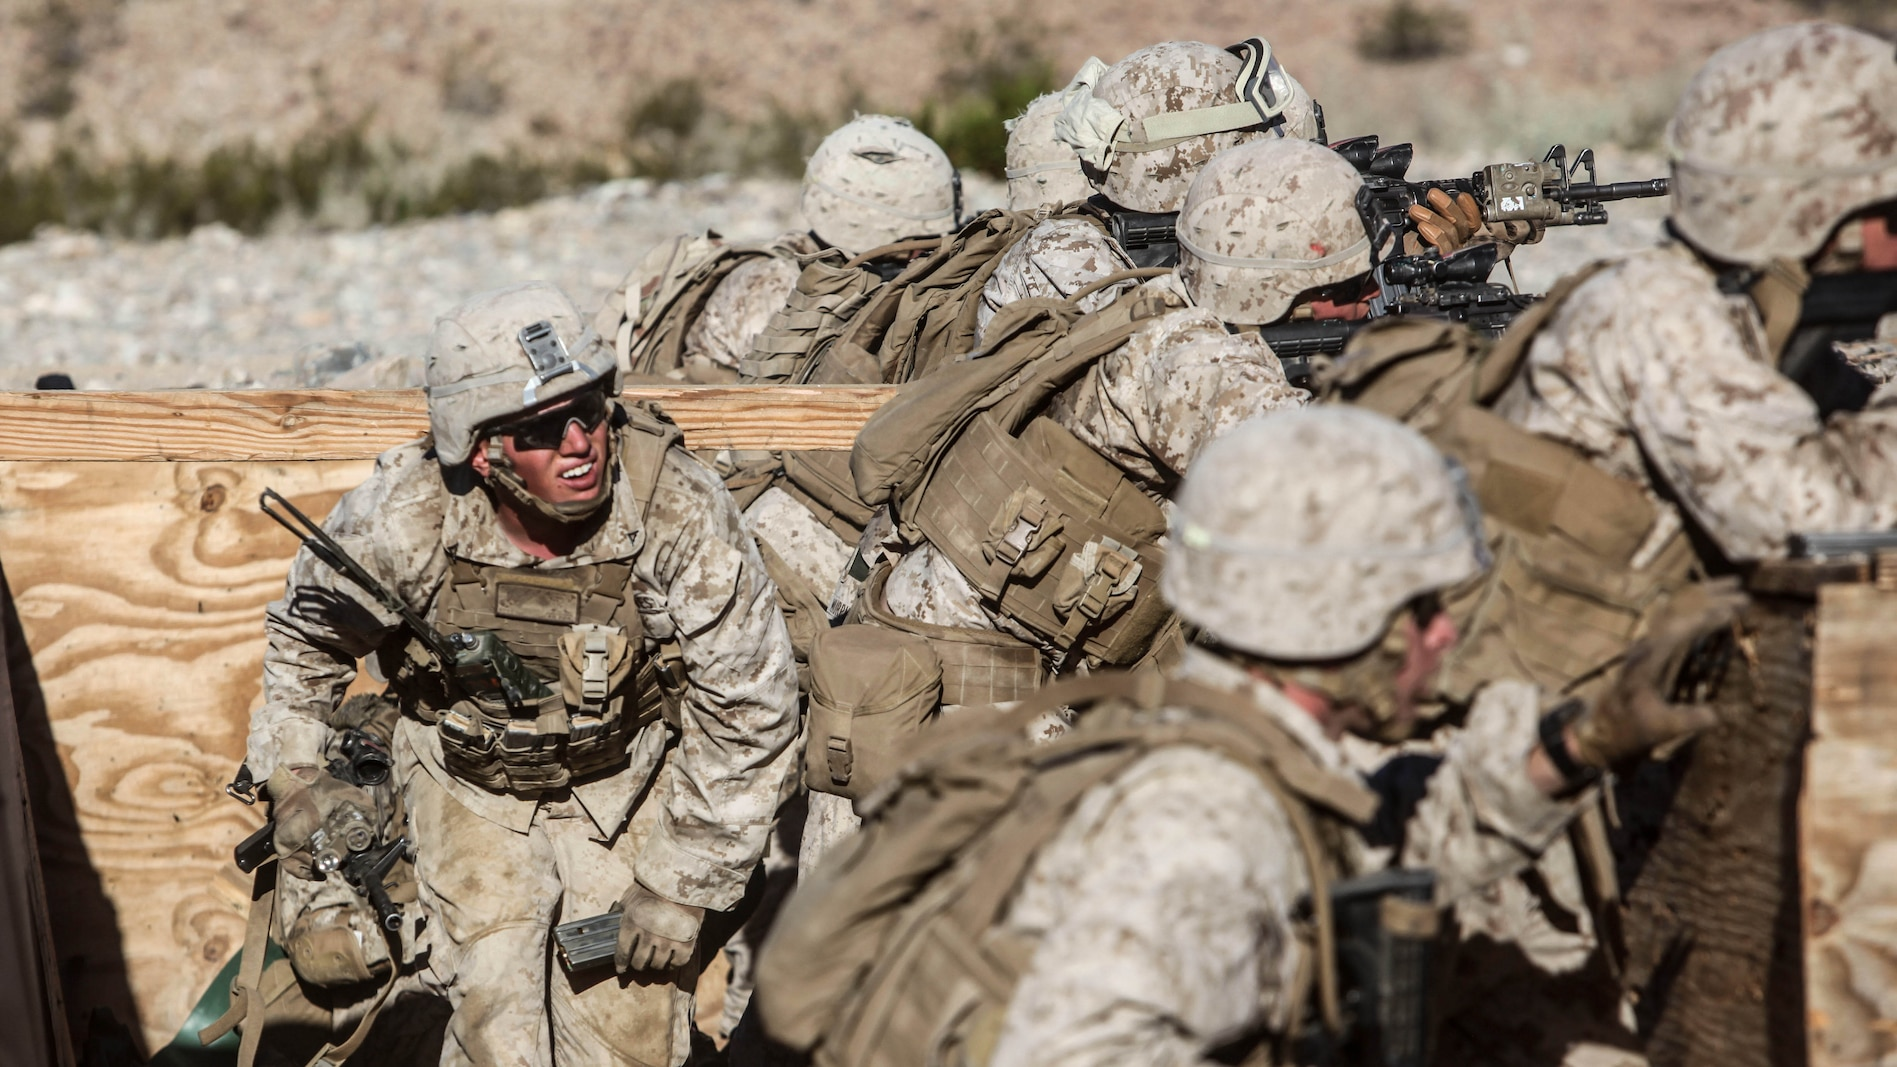 A Marine with 1st Platoon, Company C, 1st Battalion, 7th Marines, runs along his squad's firing line distributing ammunition during platoon attack drills, July 24, aboard Marine Corps Air Ground Combat Center Twentynine Palms, Calif. Training began for the Marines of Company C with a combined arms fire and maneuver exercise as part of their Integrated Training Exercise in preparation for their upcoming deployment with Special Purpose Marine Air Ground Task Force Crisis Response Central Command 16.1 scheduled to depart later this year.